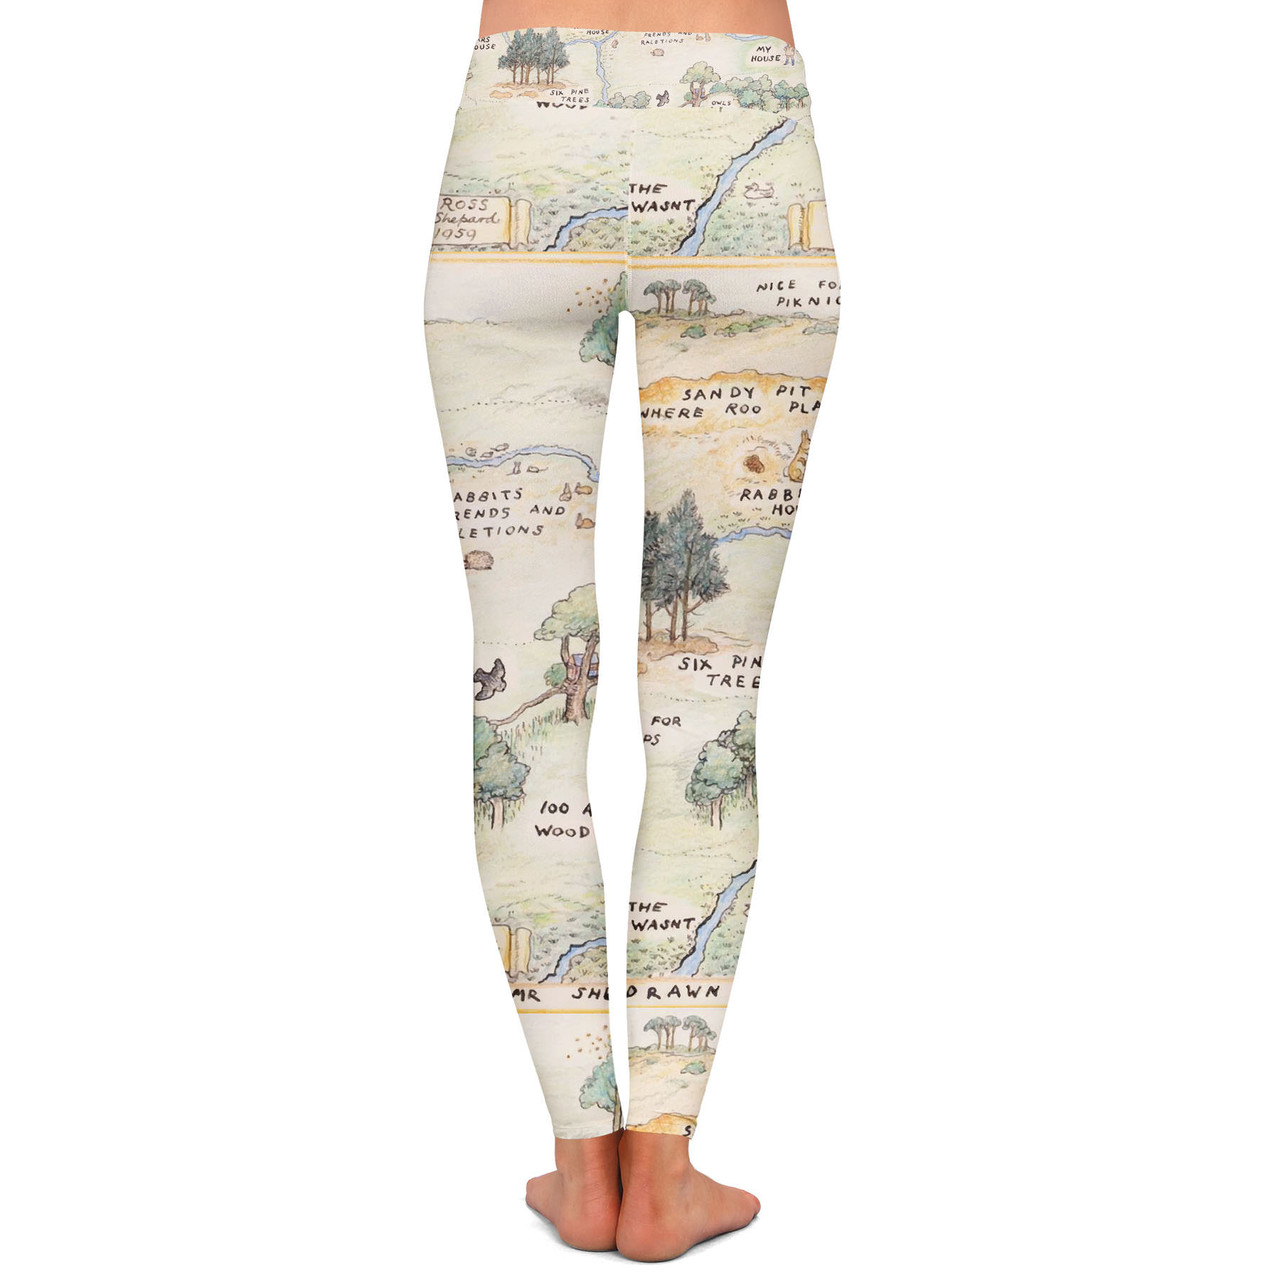 3XL Sports Disney Leggings in Capri or Full Length Winter Styles in Sizes XS Yoga Hundred Acre Wood Map Winnie The Pooh Inspired